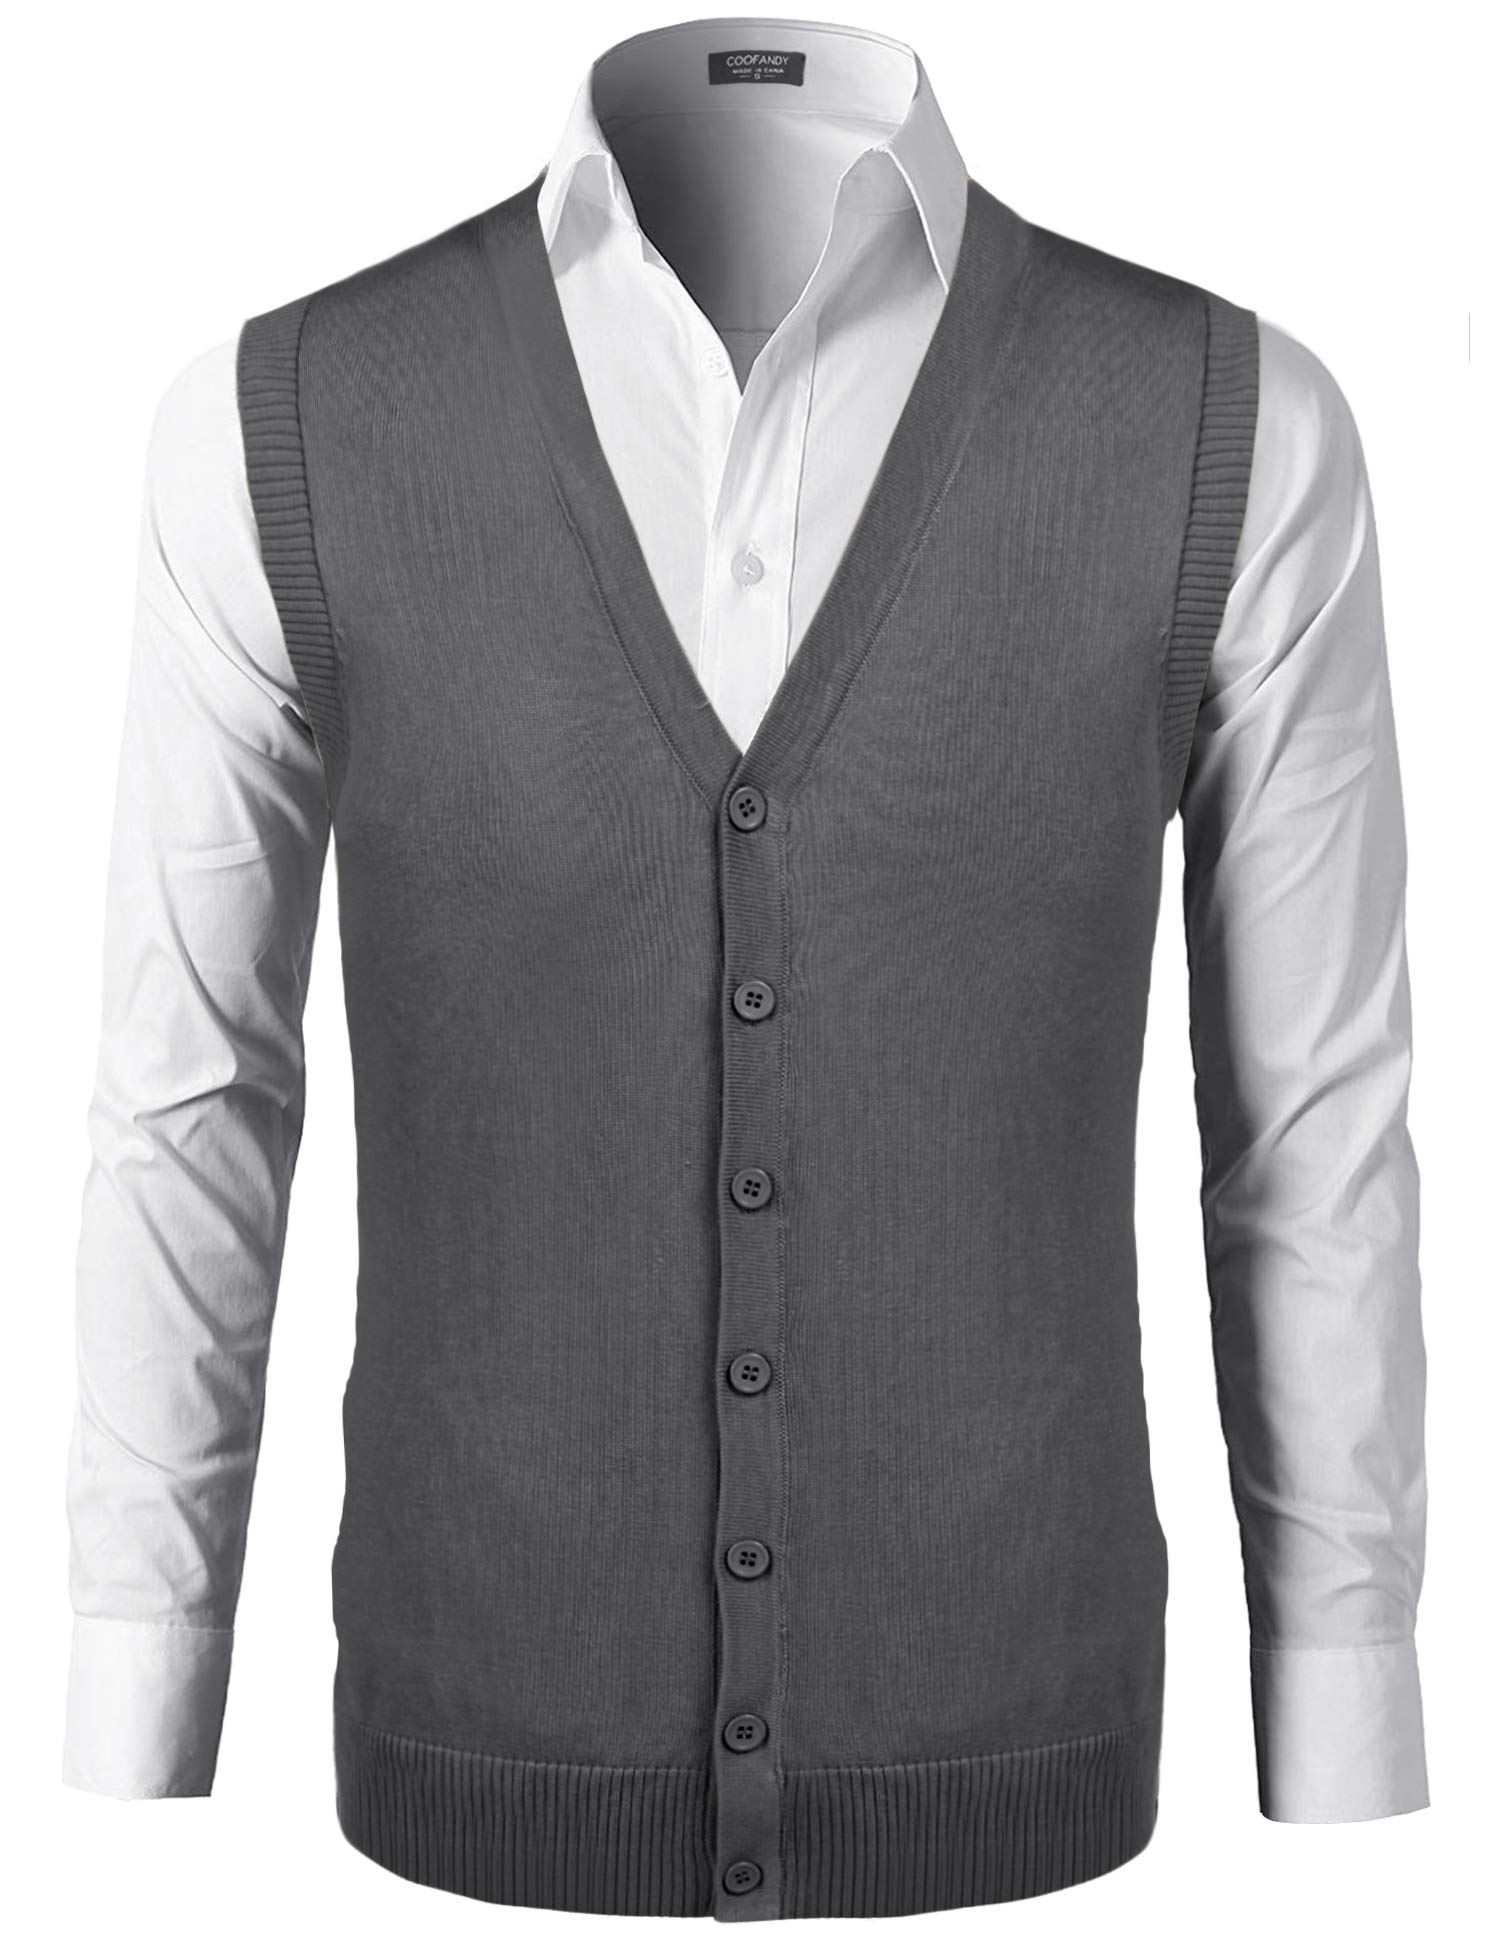 COOFANDY Men's Cashmere Sweater Vest Button Down V-Neck Cardigan Autumn Winter Grey by COOFANDY